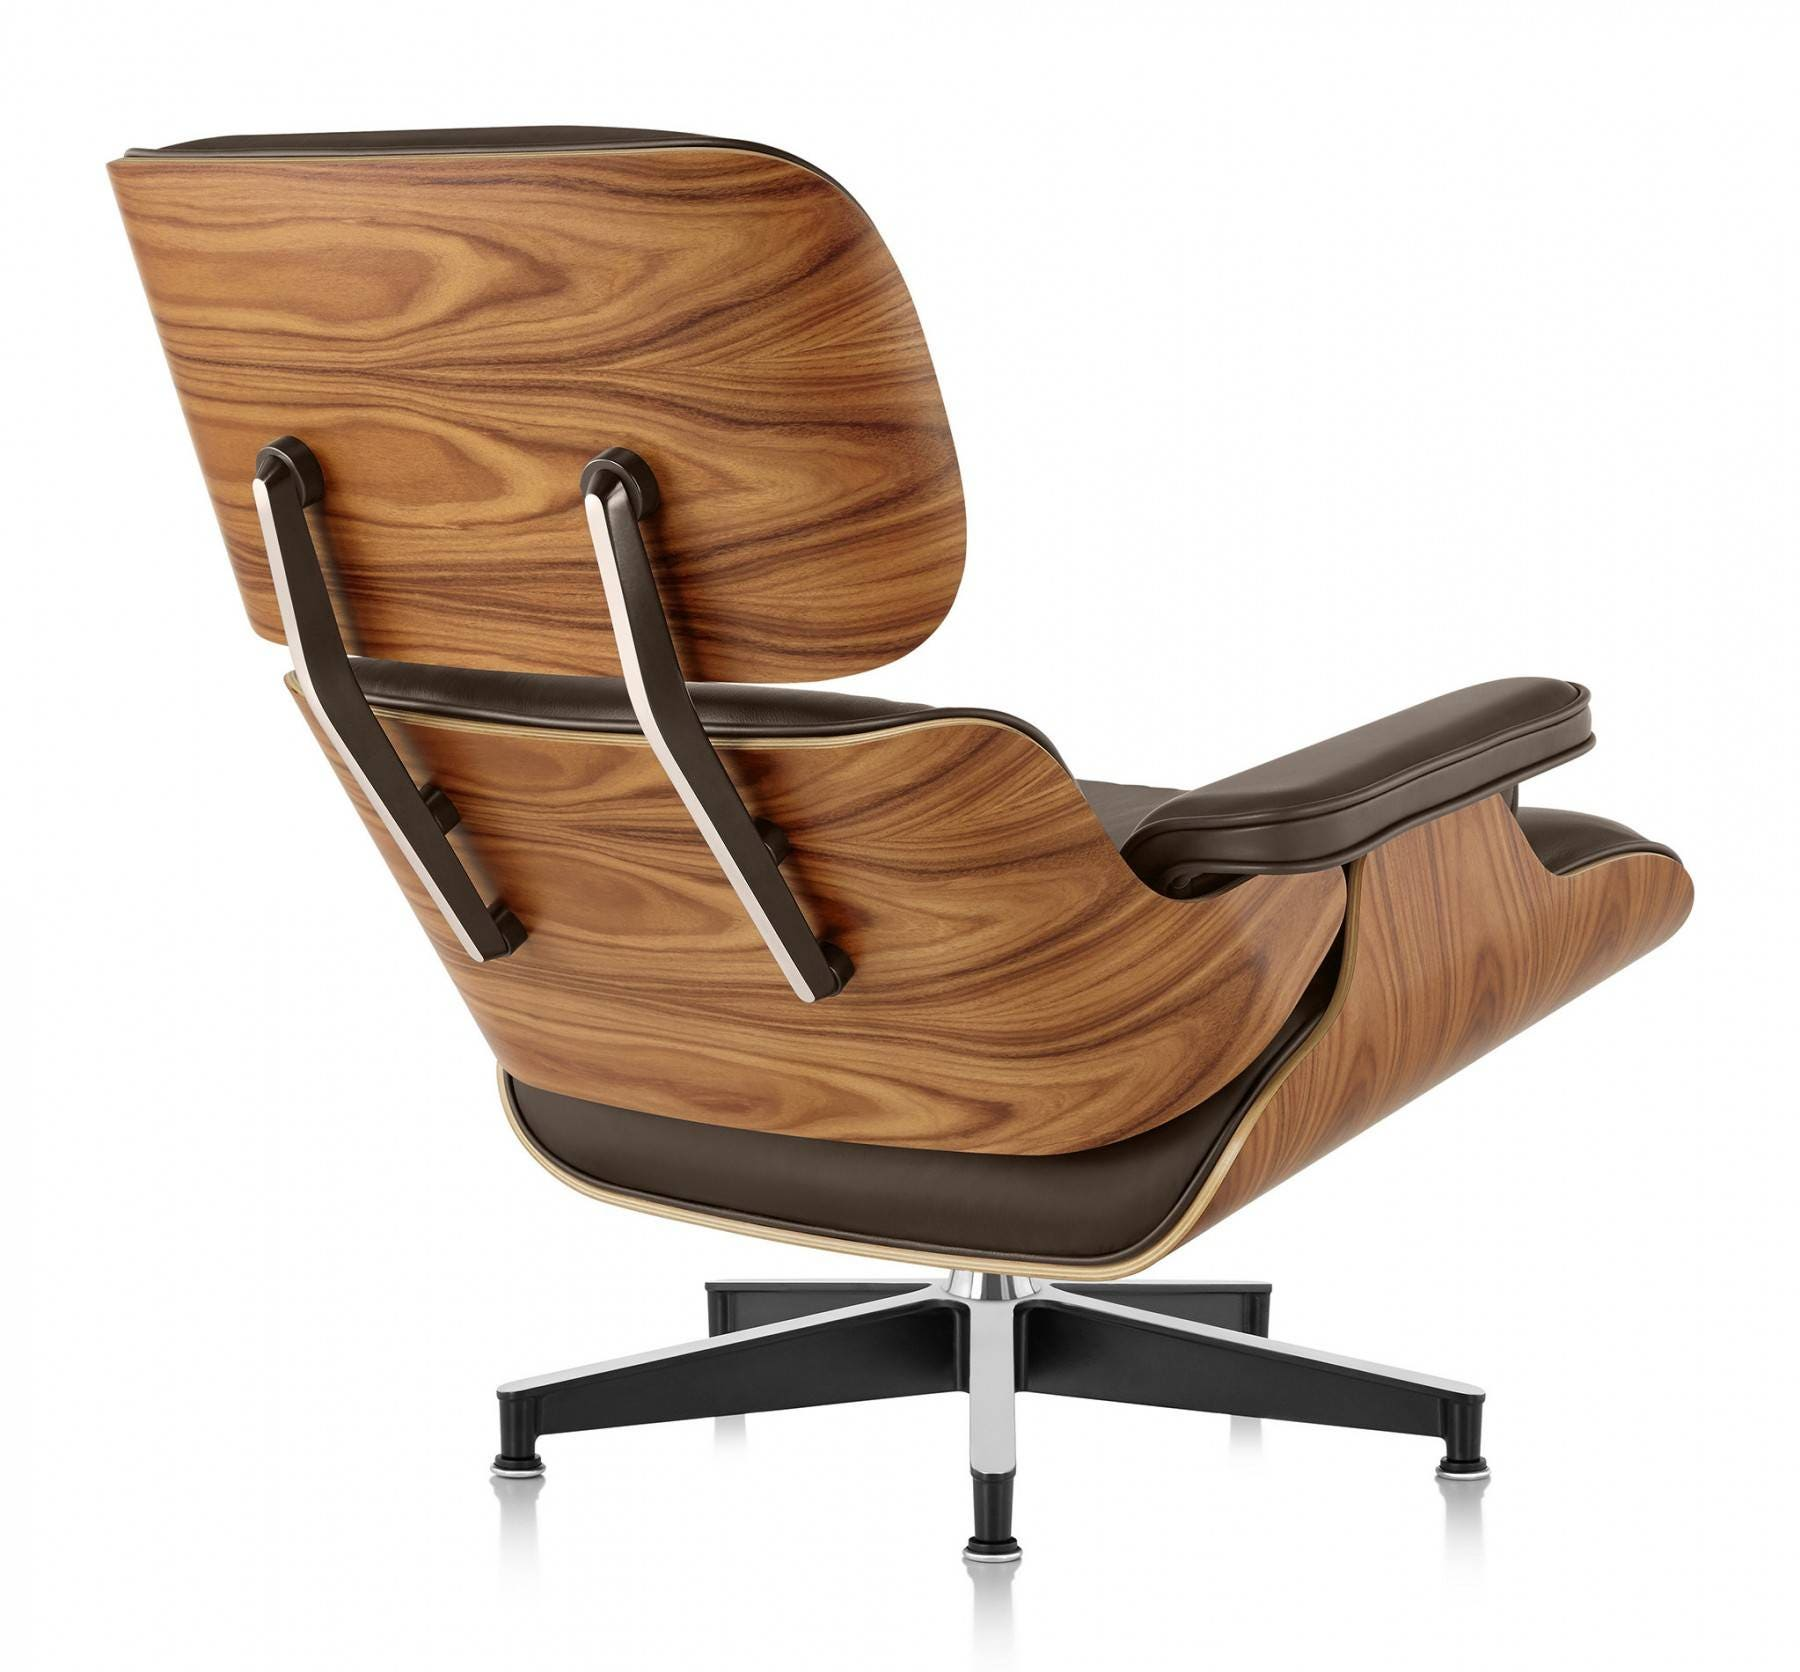 Vintage eames lounge chair -  Eames Lounge Chair 1